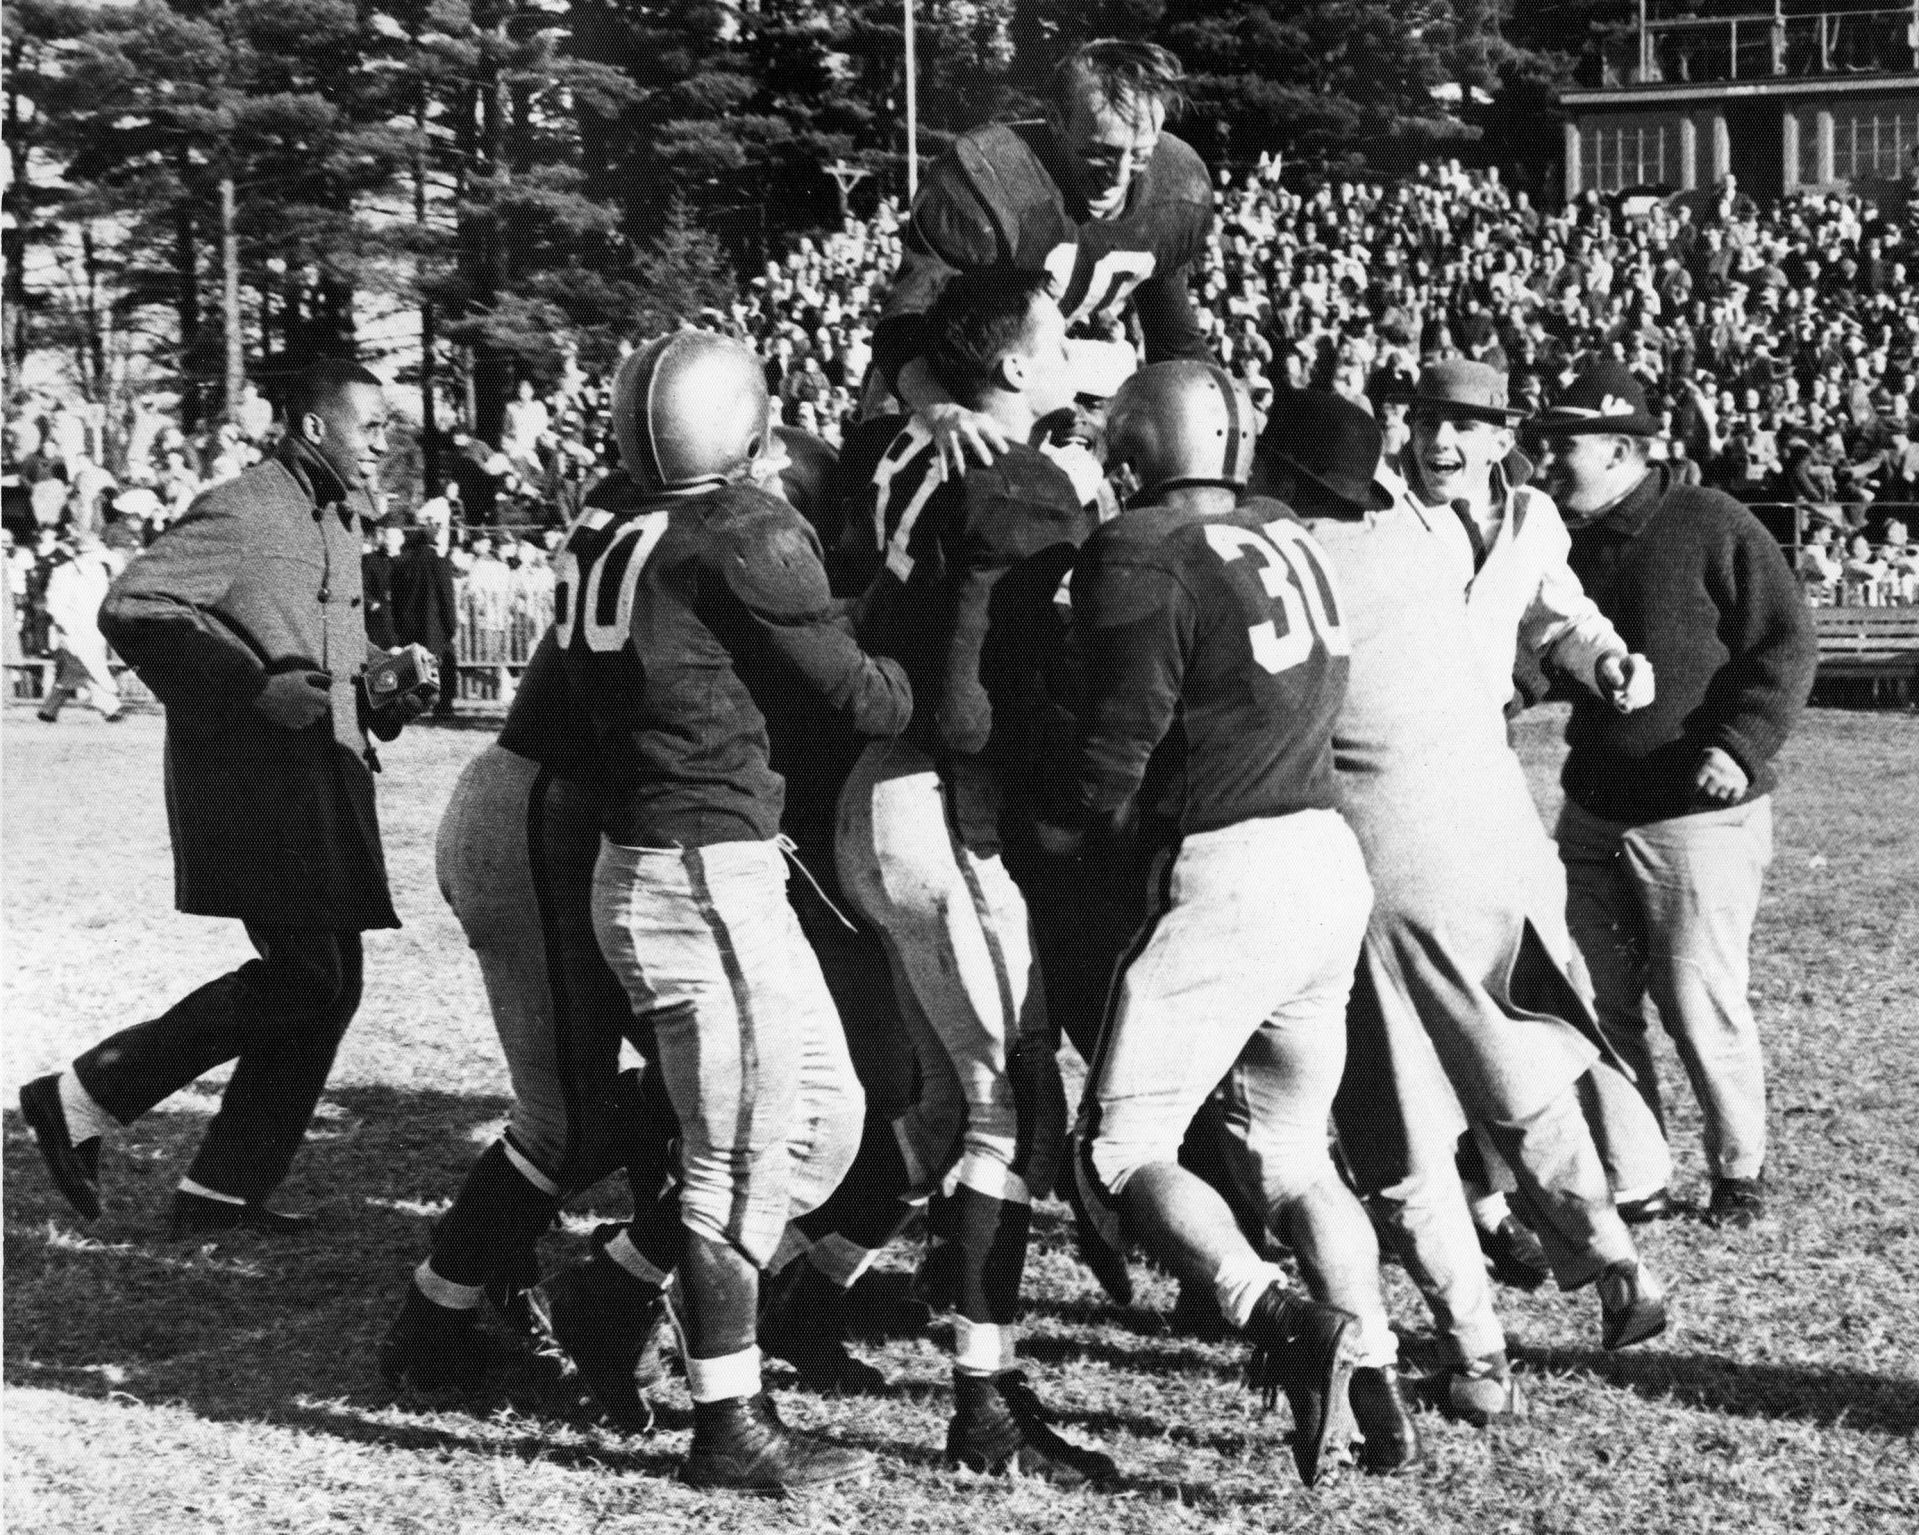 Mostly avoiding the flu, the Bates football team defeated the University of Maine on Oct. 26, 1957. (Muskie Archives and Special Collections Library)